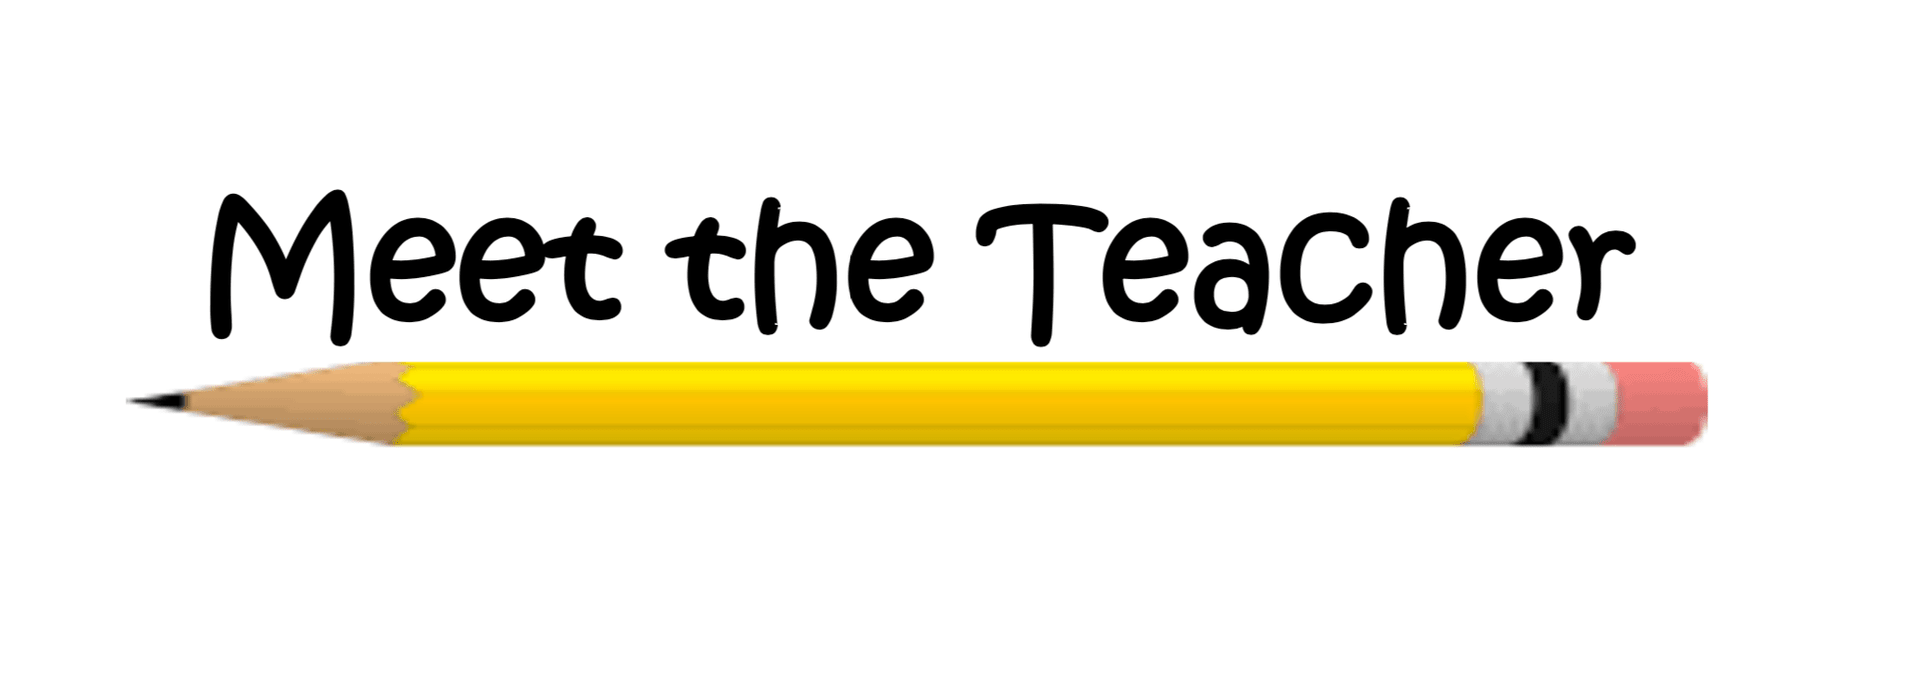 Image of Meet the teacher with a graphic of a pencil